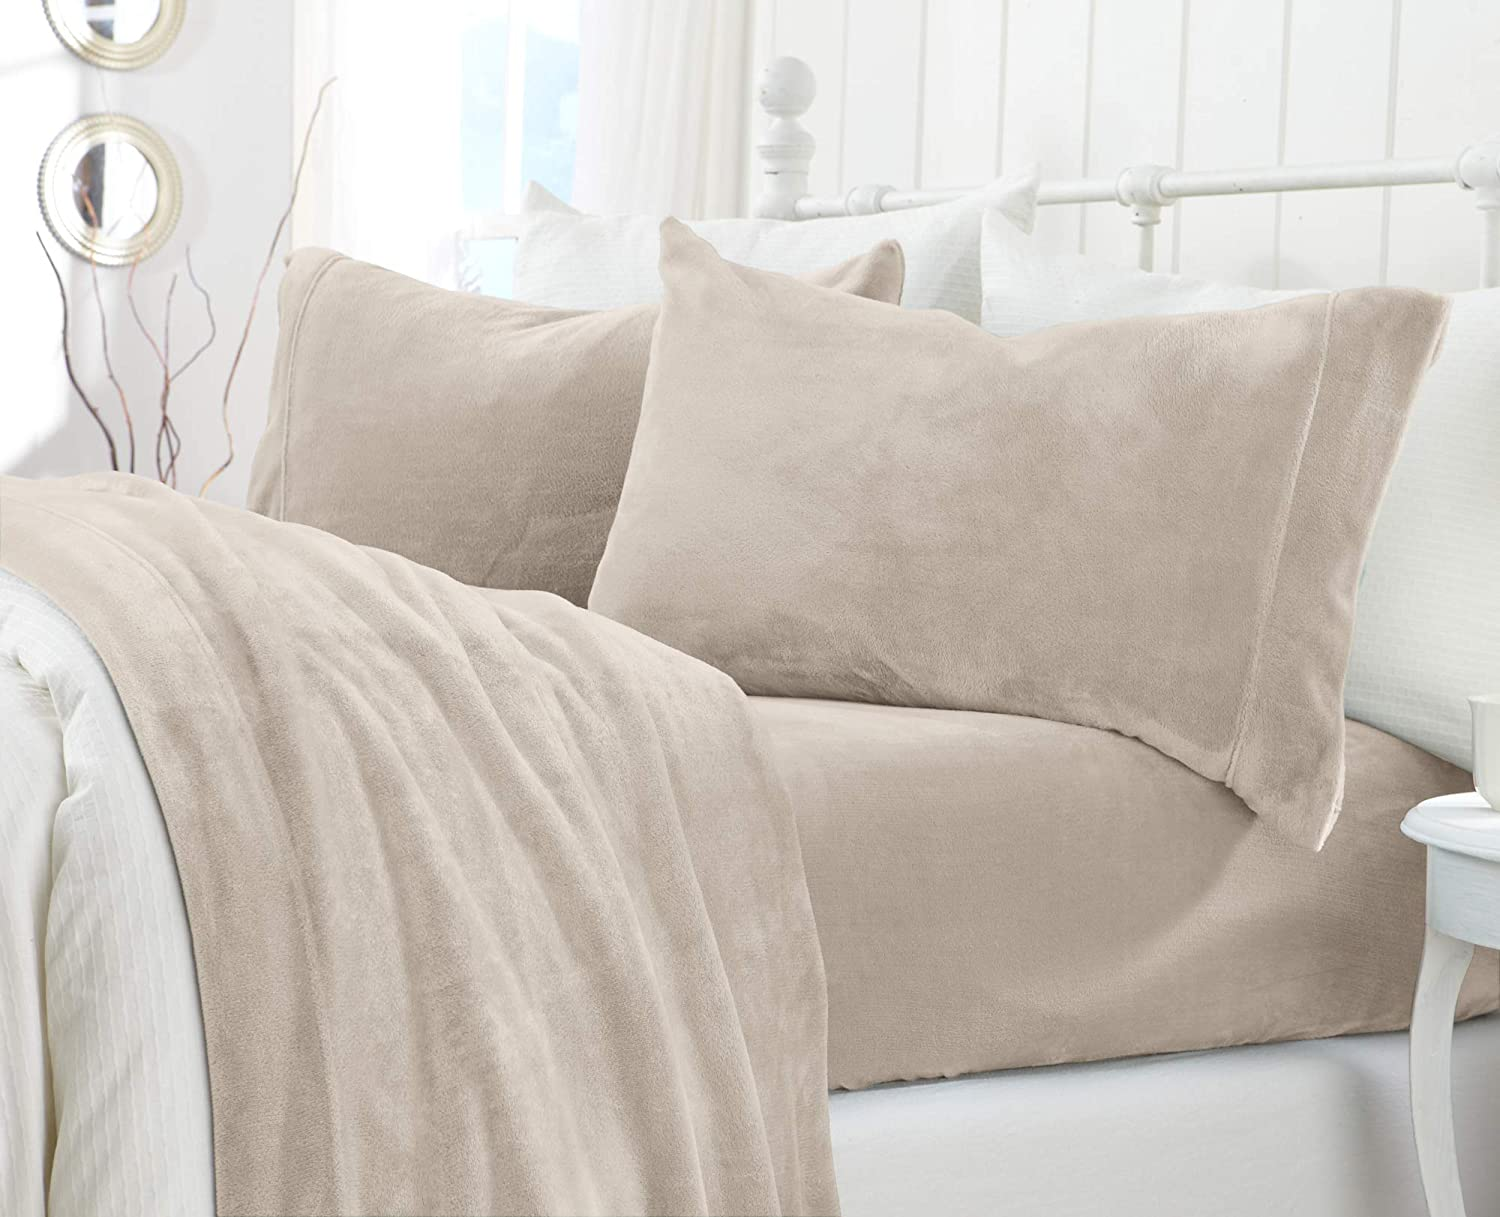 Extra Soft Cozy Velvet Plush Sheet Set. Deluxe Bed Sheets with Deep Pockets. Velvet Luxe Collection (Queen, Light Grey)